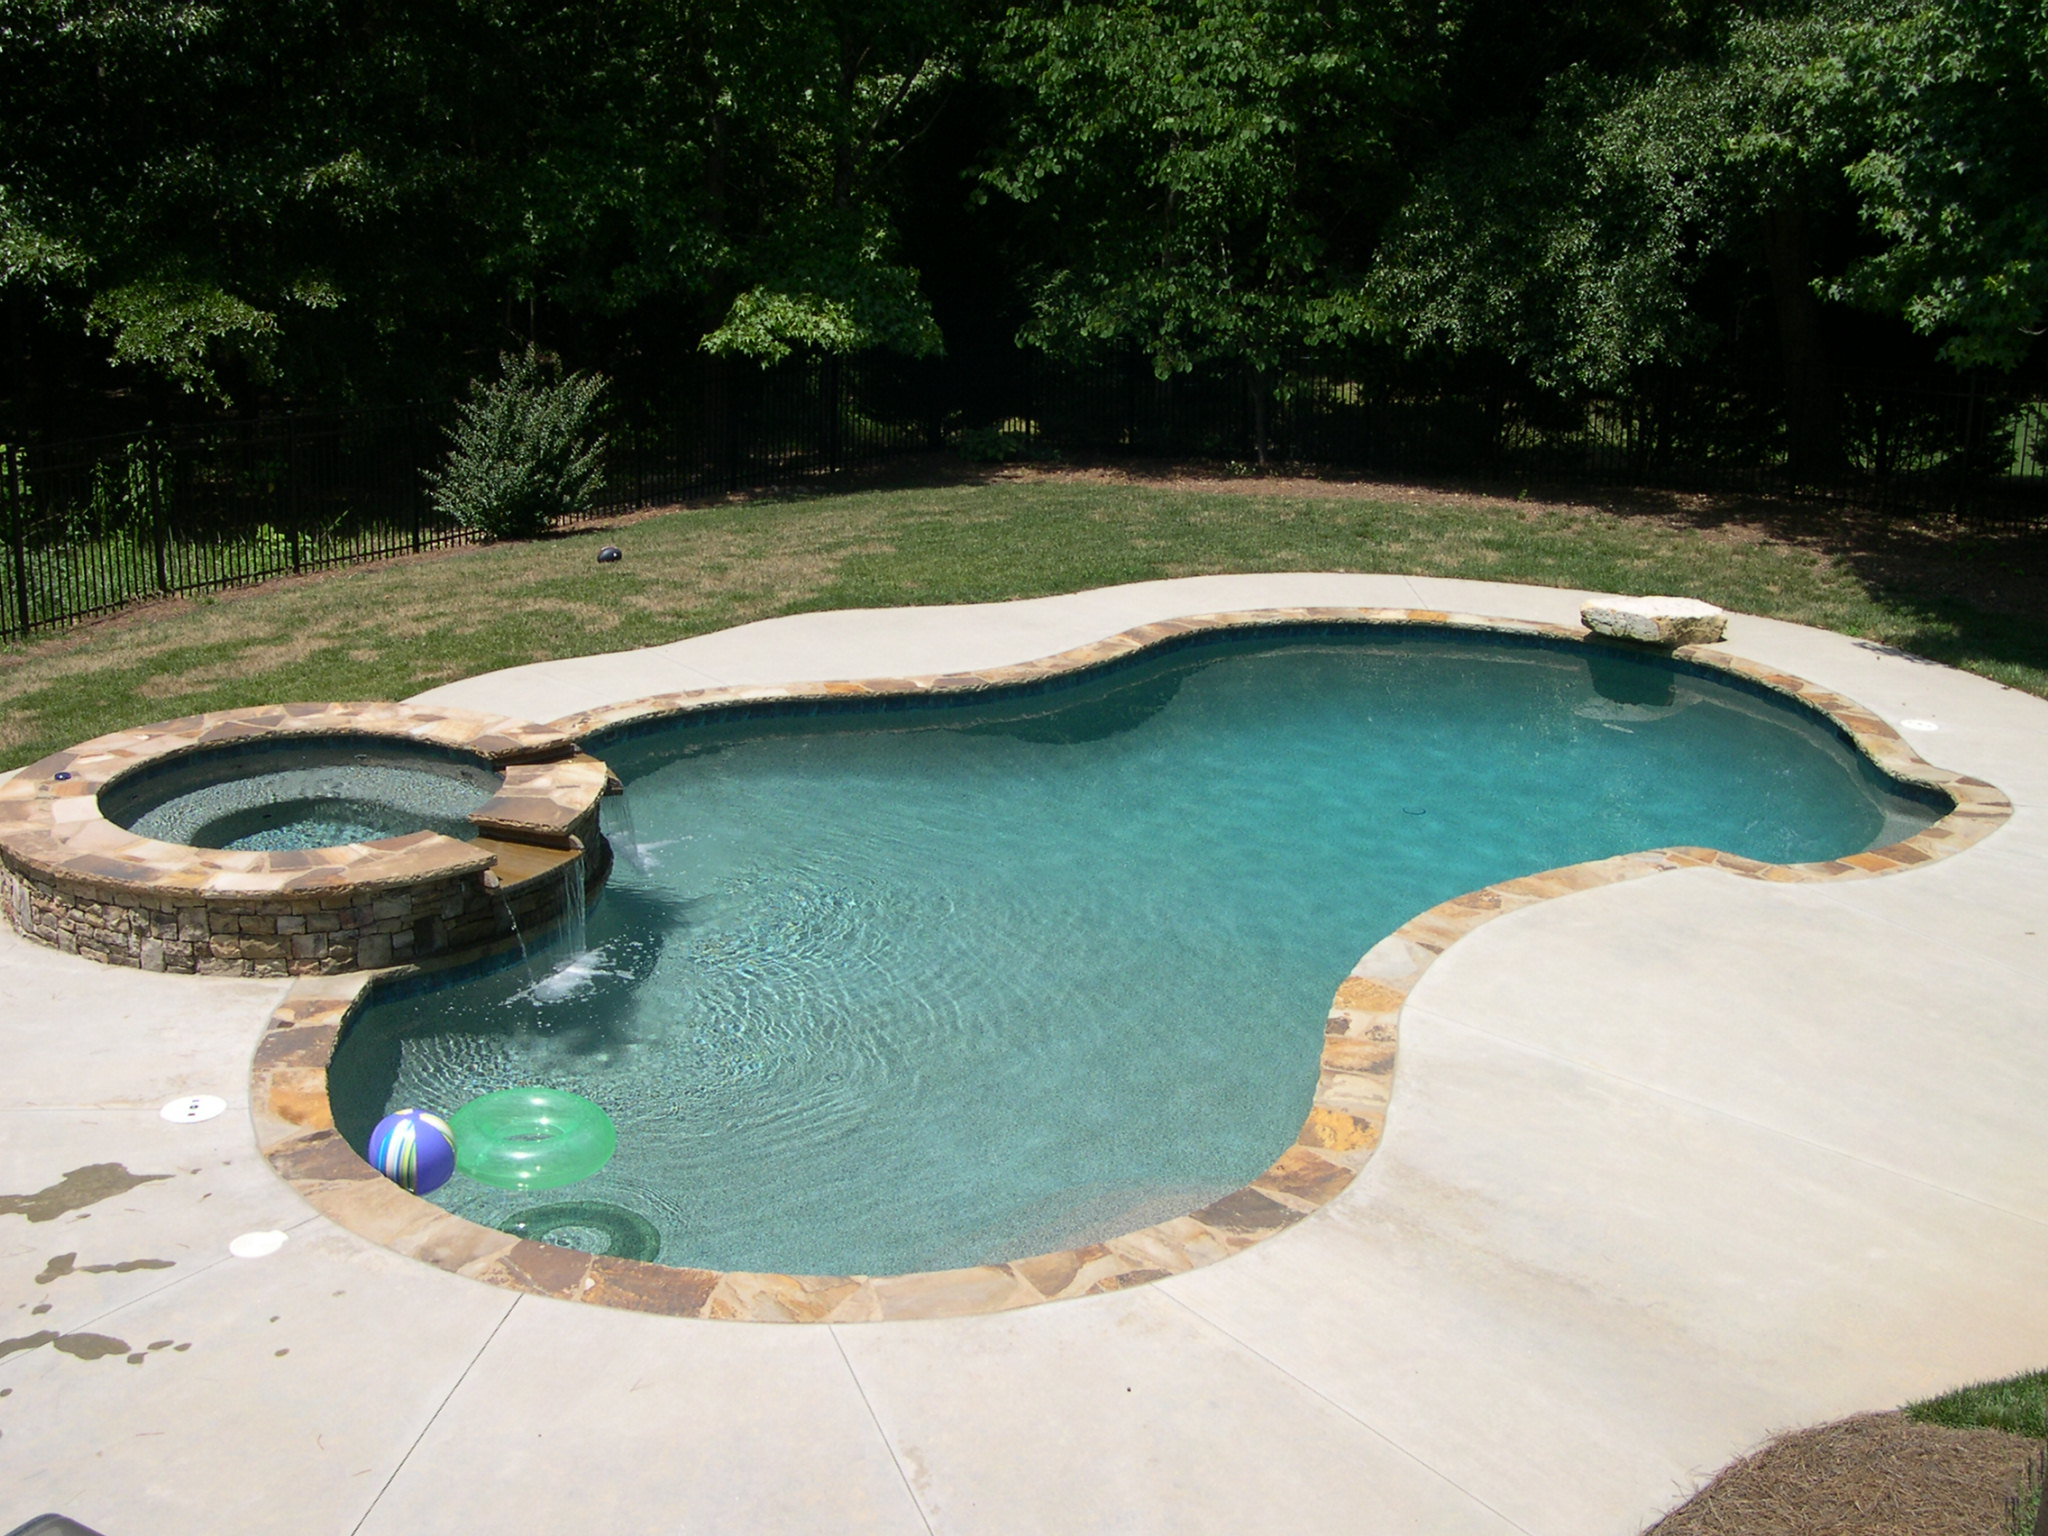 Jacuzzi Pool Deluxe 33 Jacuzzi Pools For Your Home